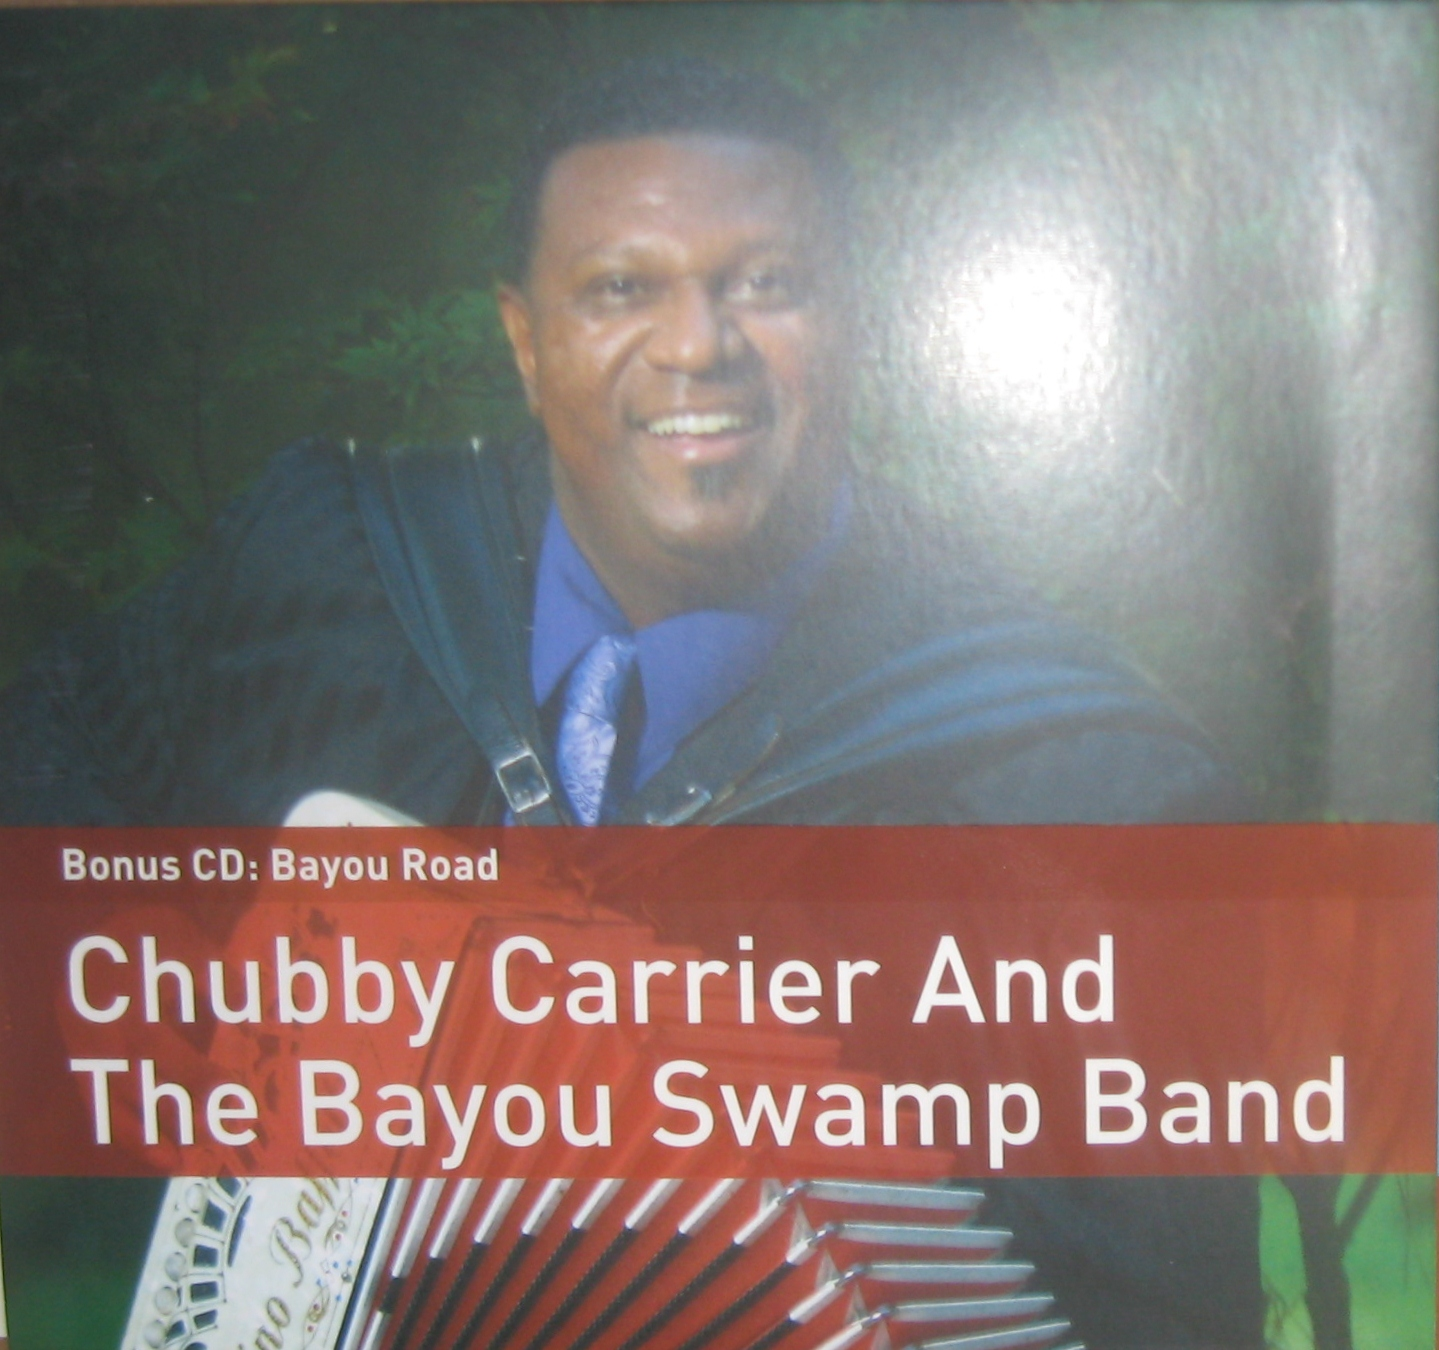 Road chubby carrier cd bayou